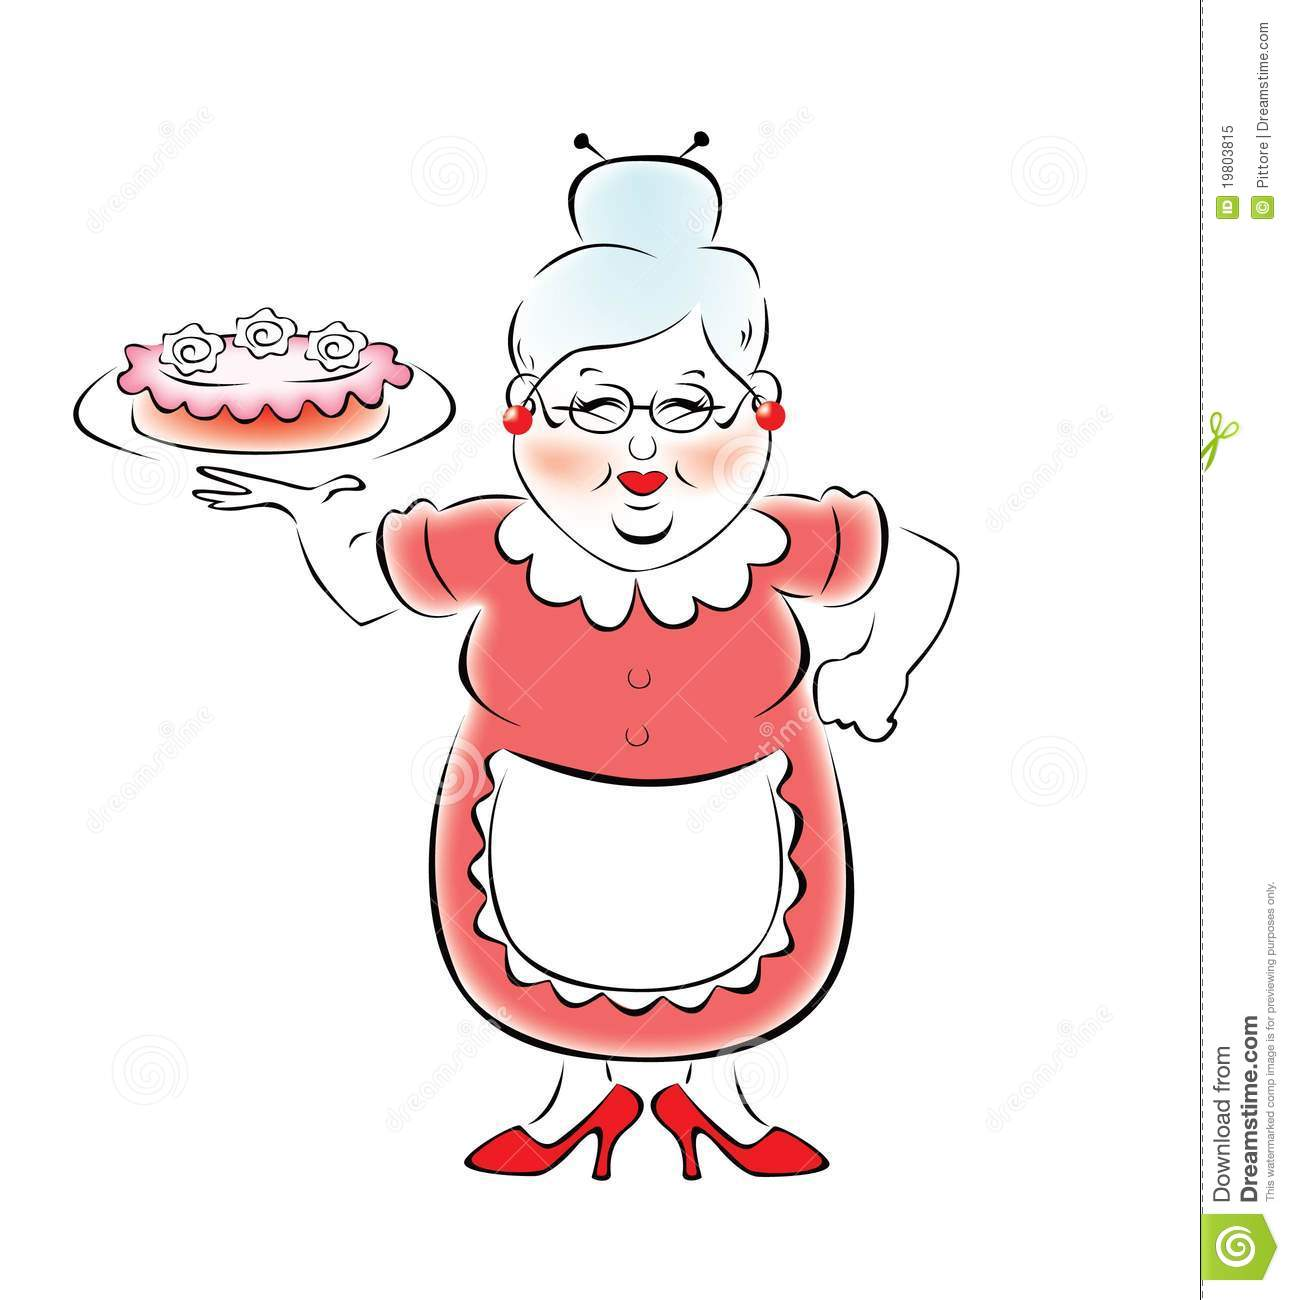 Delicious Cake Clipart : Grandma Baked A Delicious Cake Royalty Free Stock Photo ...